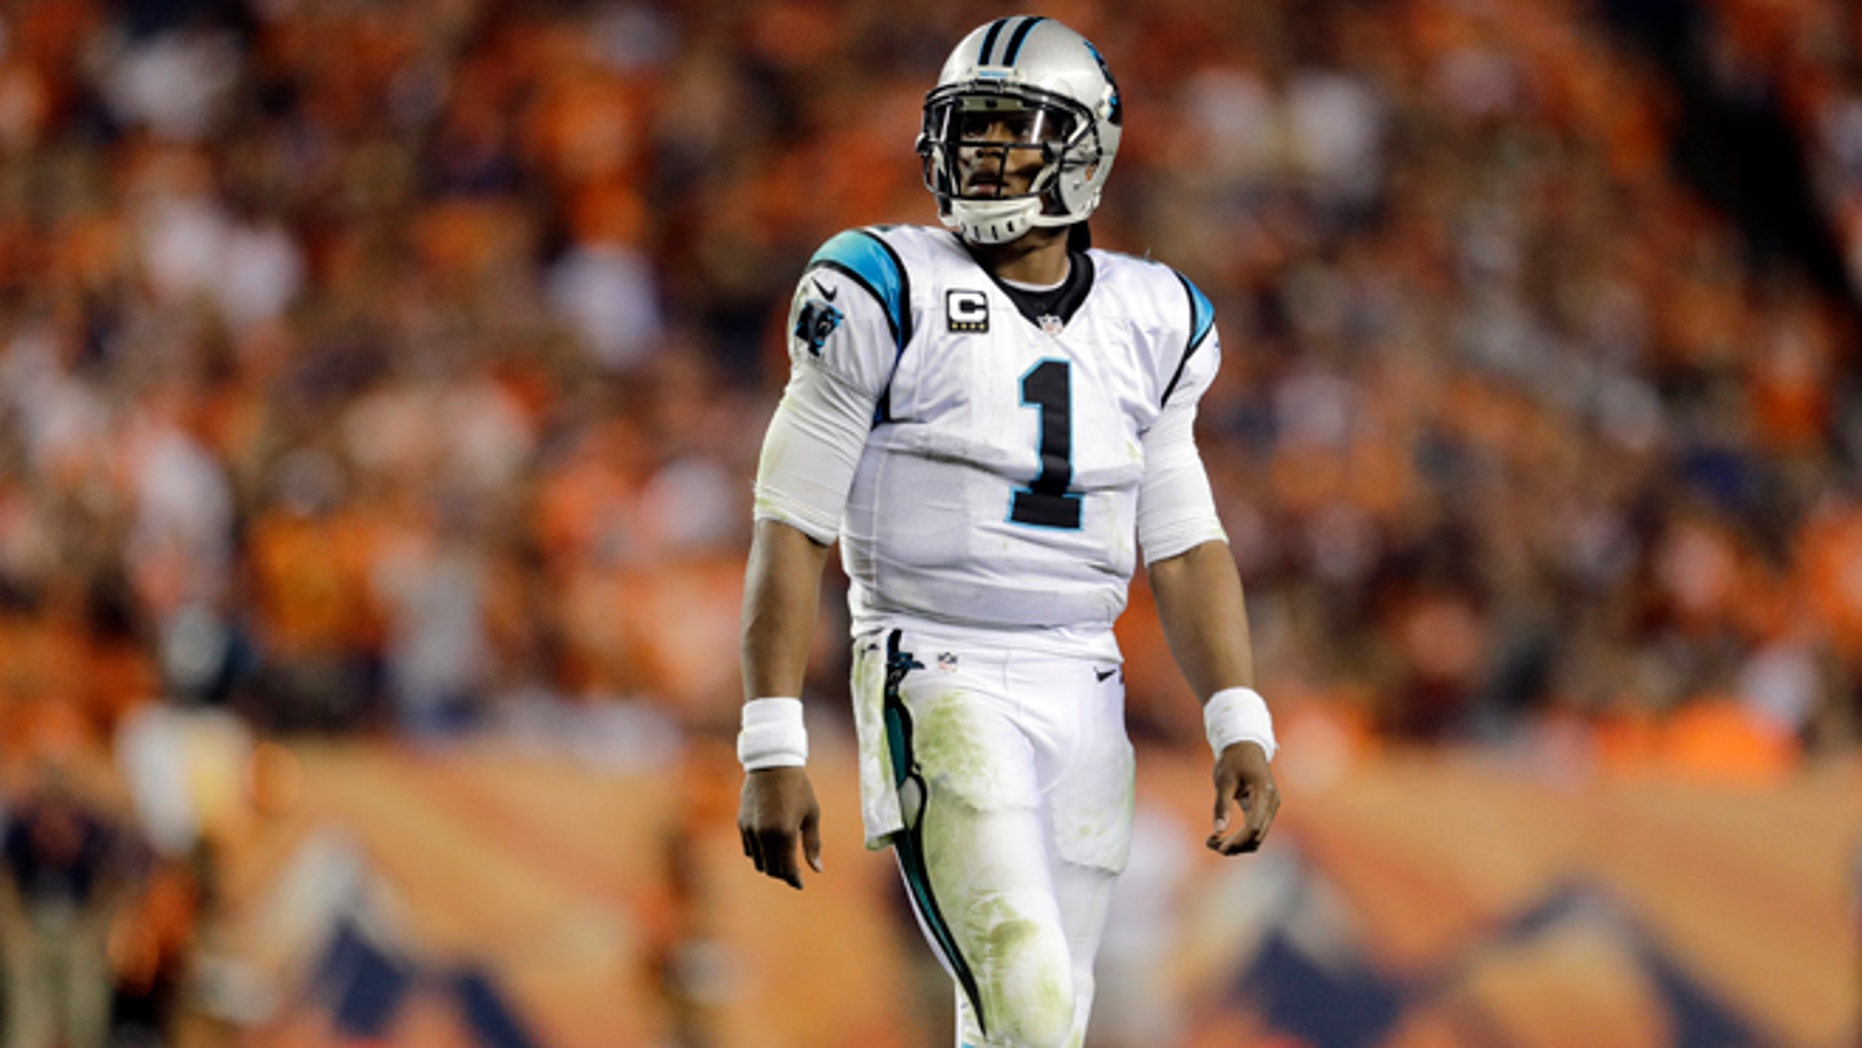 Carolina Panthers quarterback Cam Newton (1) walks to the sidelines during the second half of an NFL football game against the Denver Broncos, Thursday, Sept. 8, 2016, in Denver. (AP Photo/Joe Mahoney)